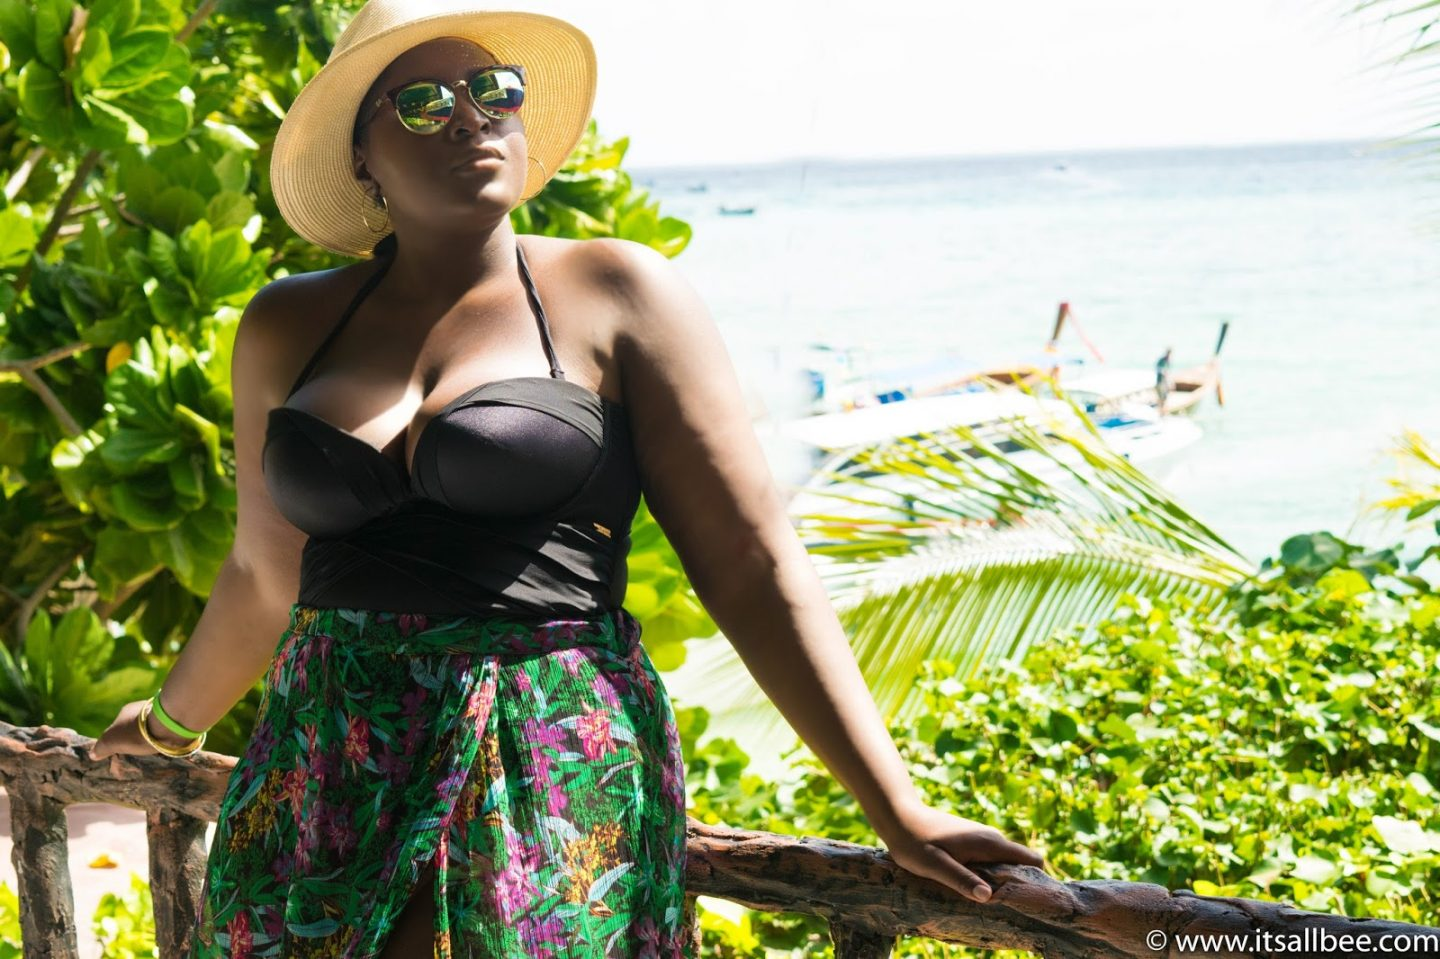 Stylish Beach Cover-ups You Need To Pack For Next Vacation